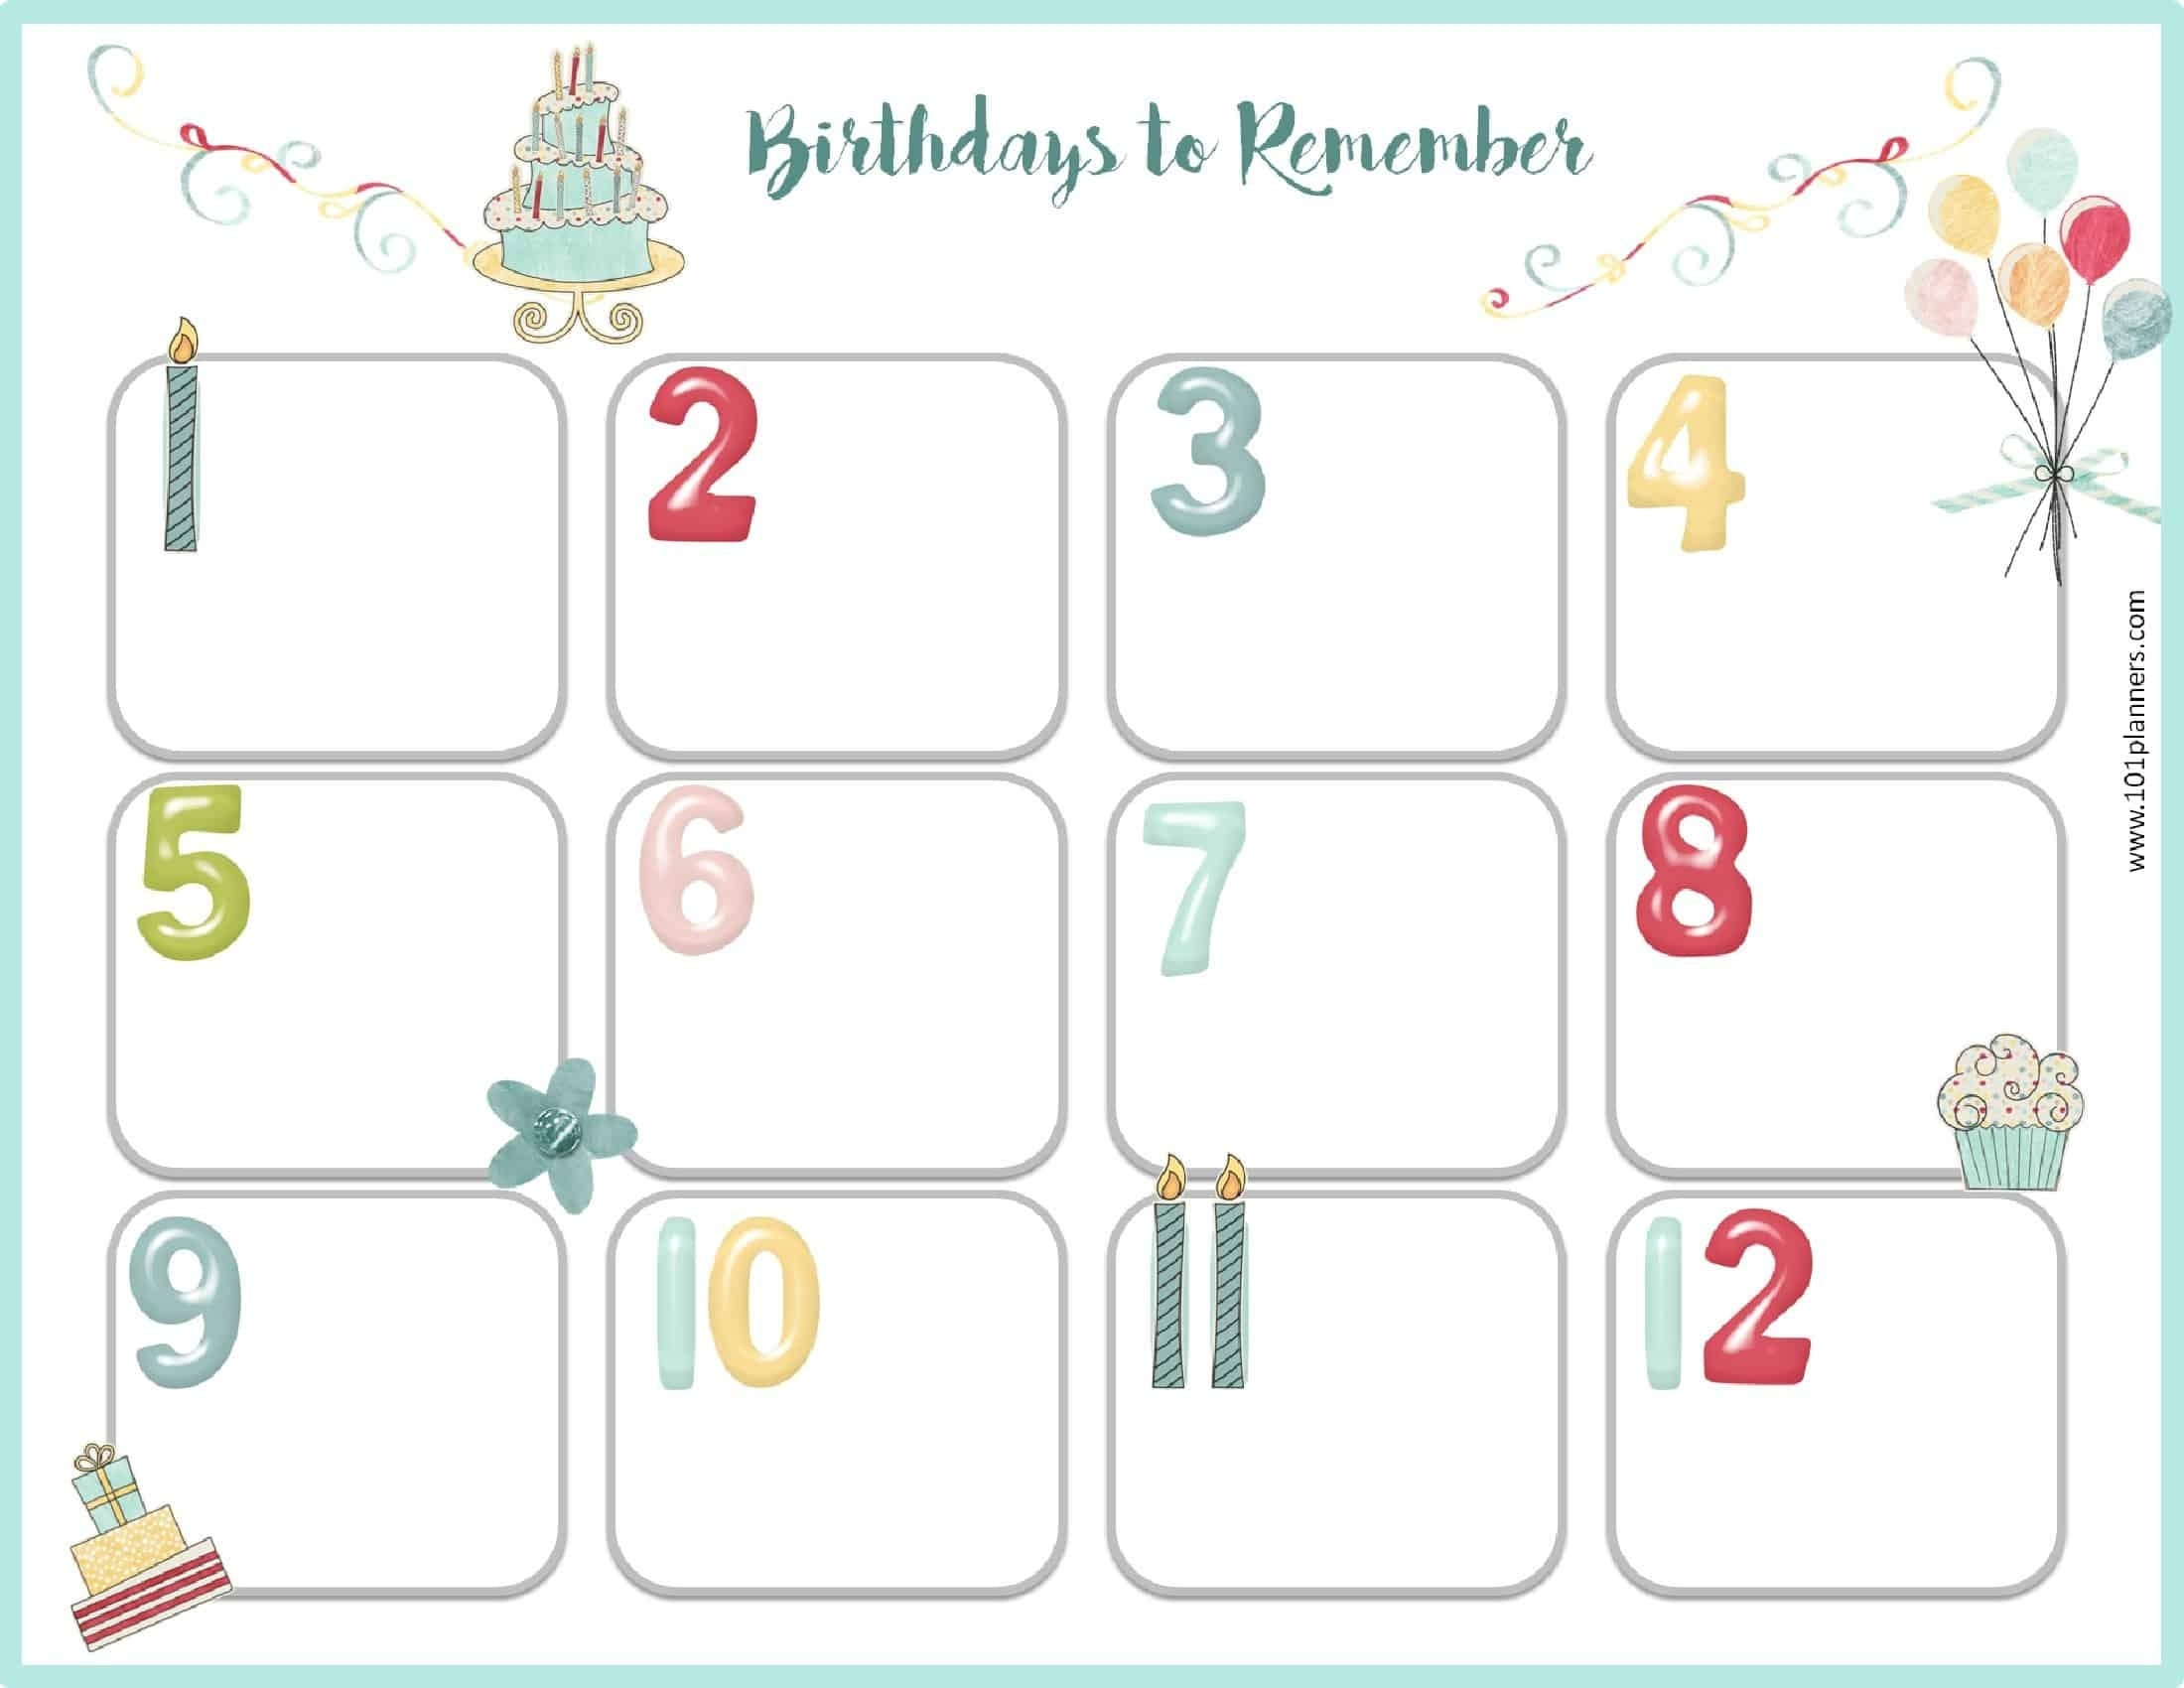 Free Birthday Calendar | Printable & Customizable | Many Designs!_Countdown Calendar Birthday Printable